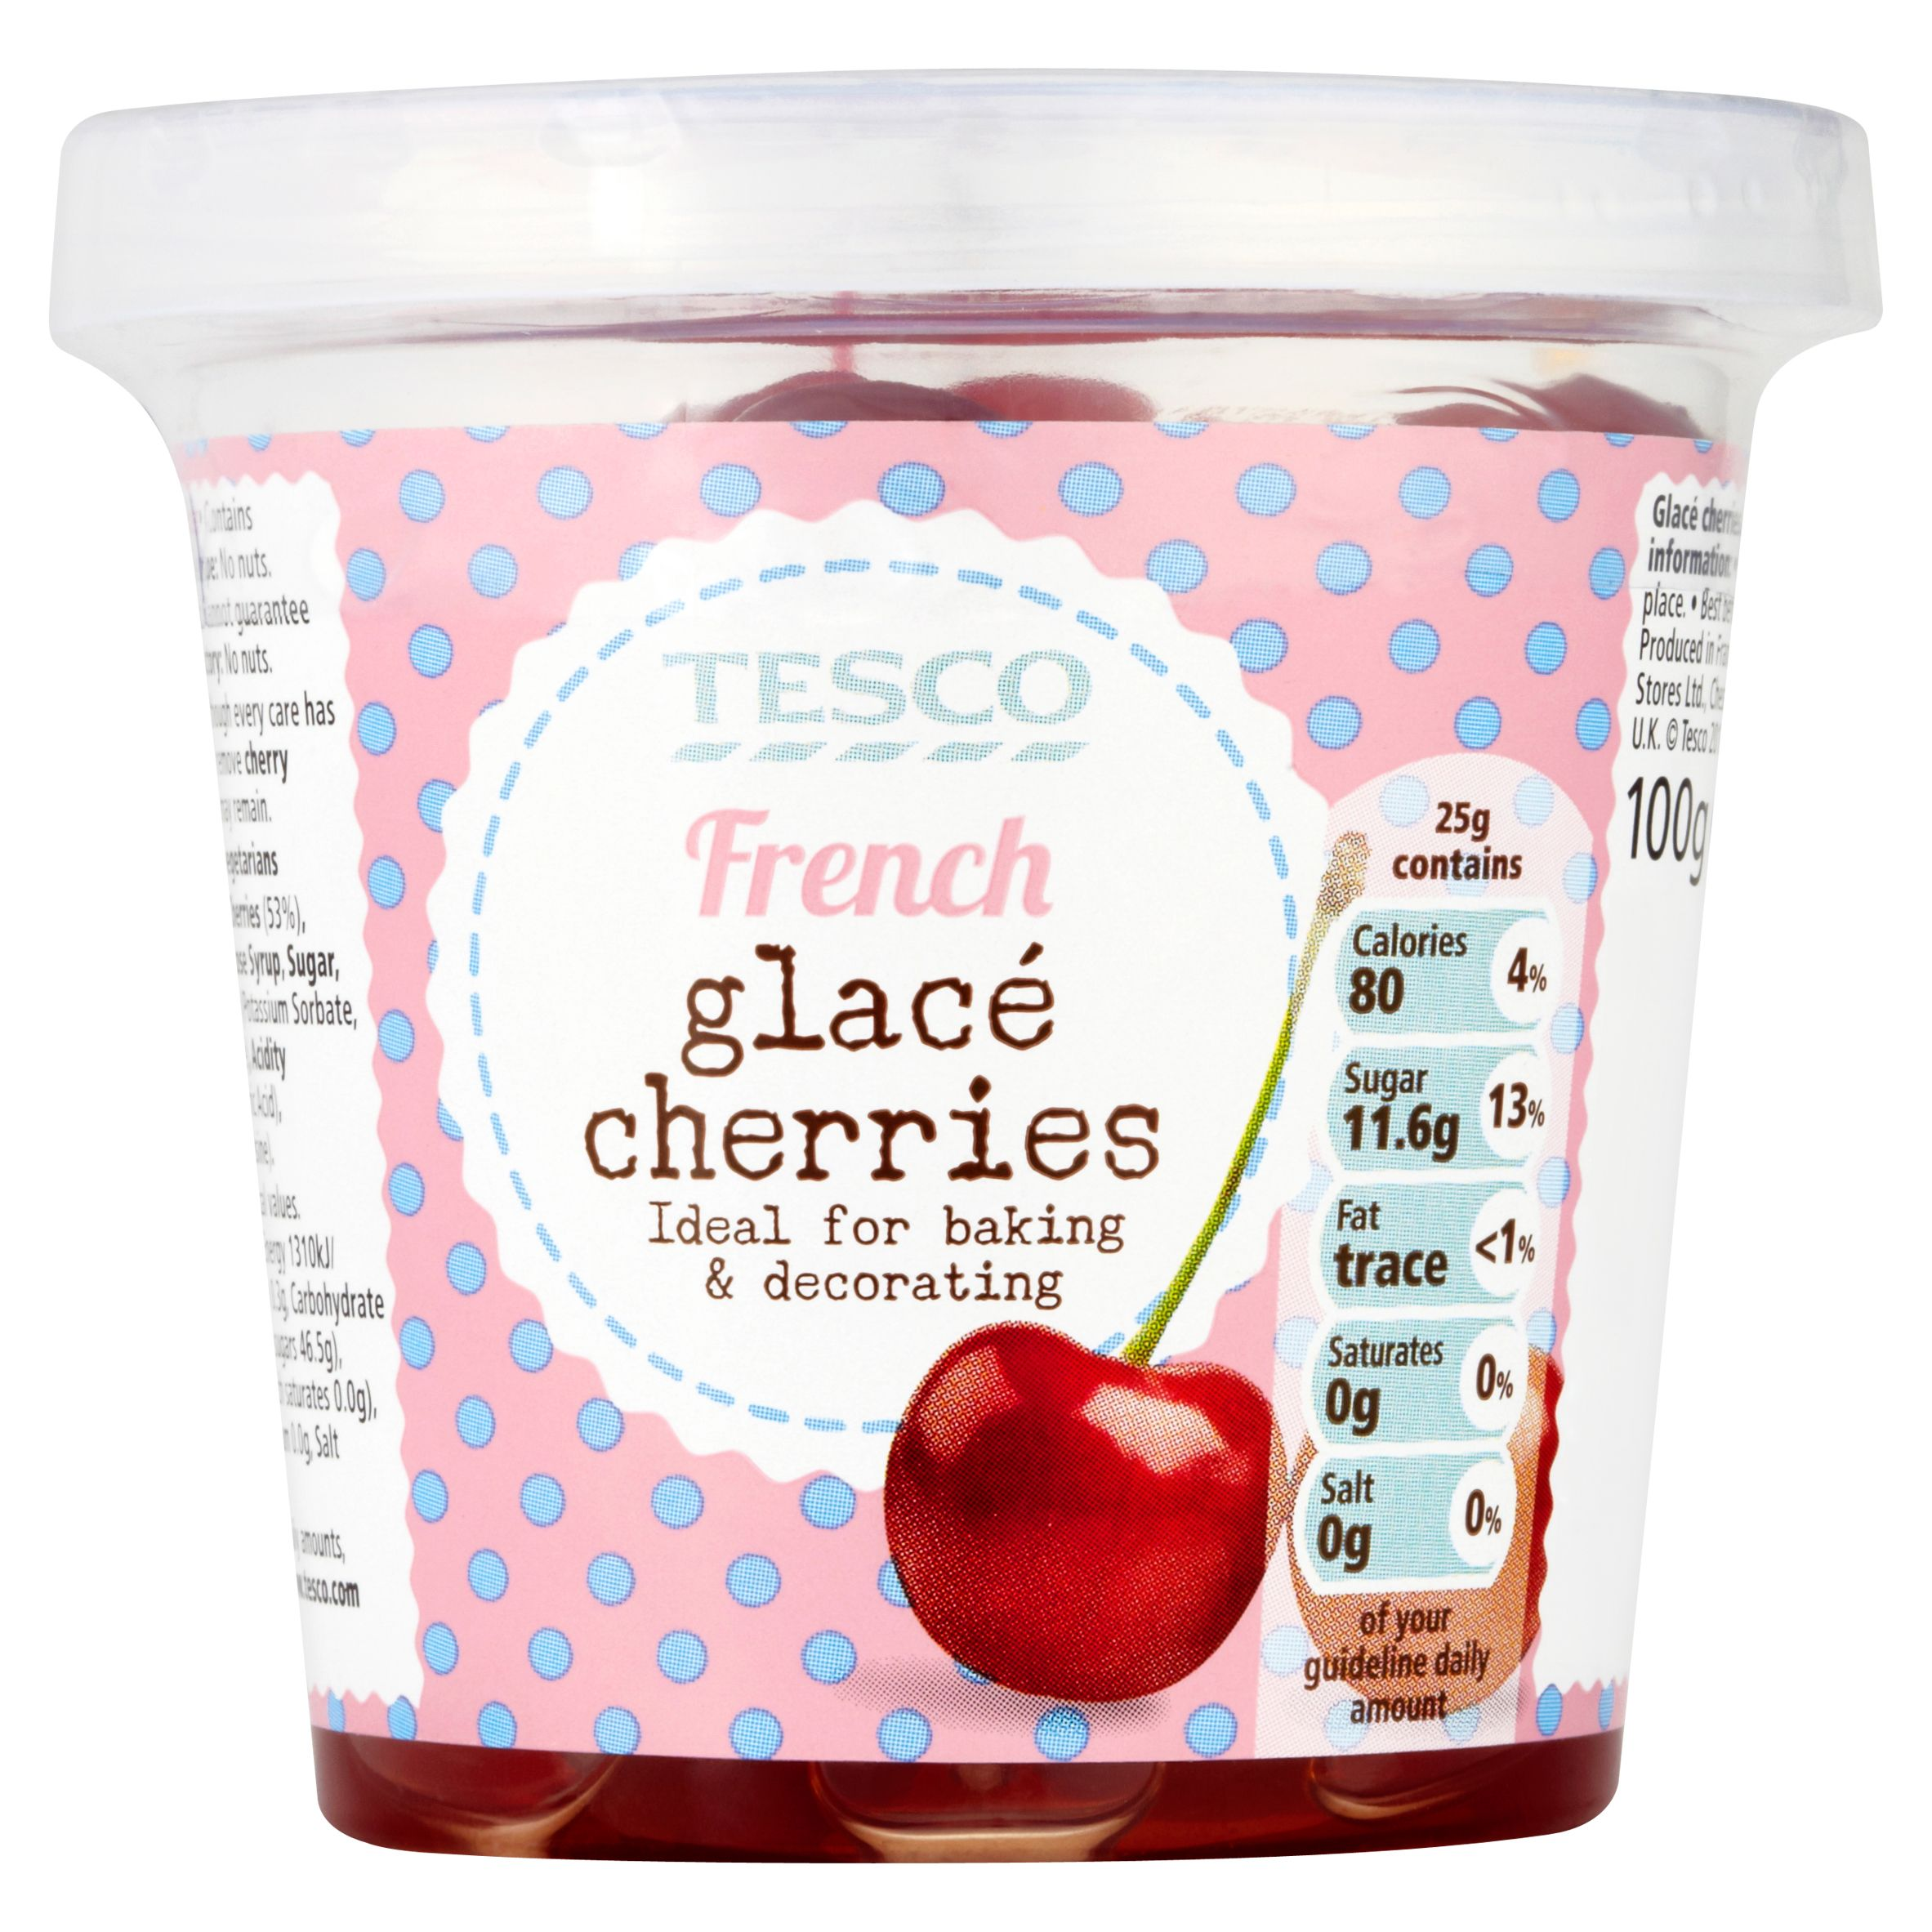 Tesco French Glace Cherries Glace Cherries 100 Calories Tesco